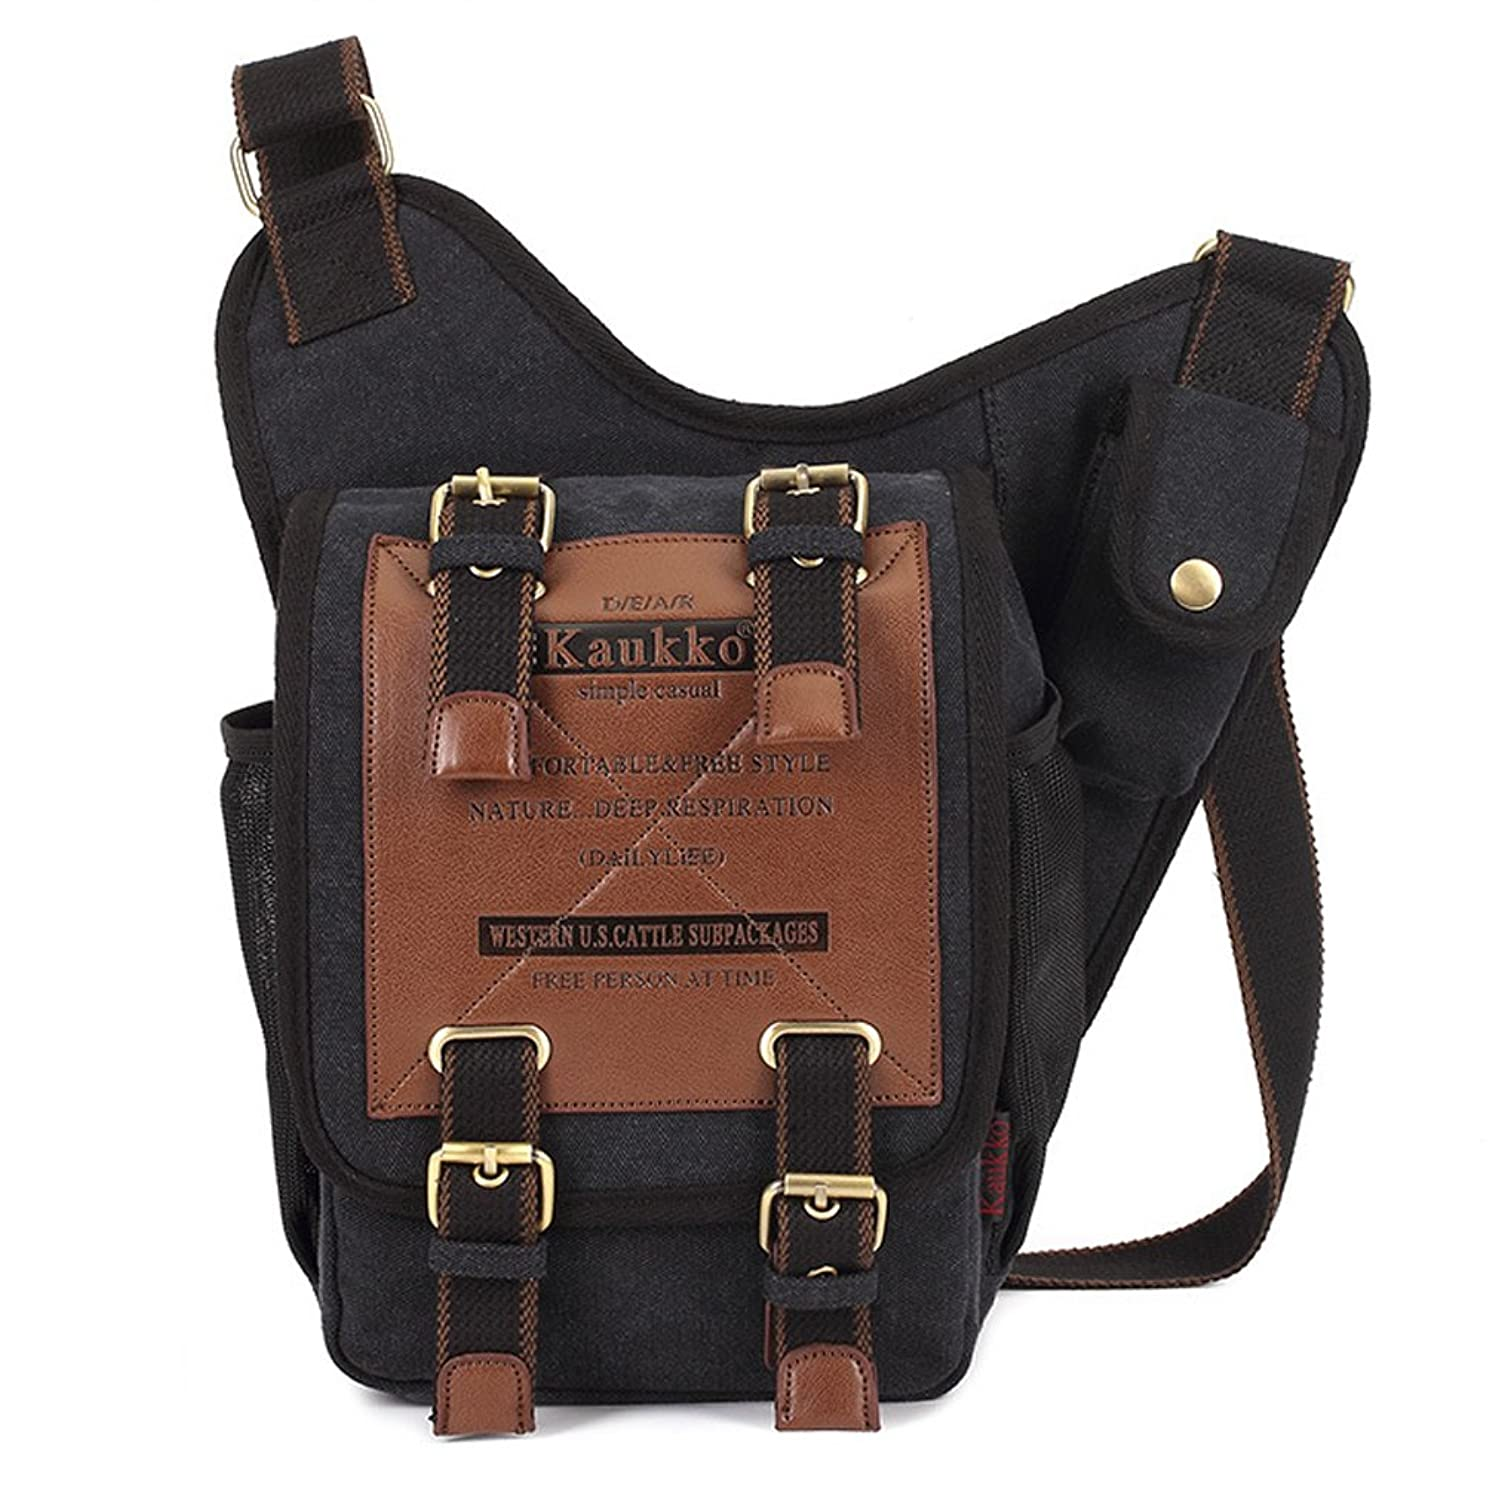 Keshi Canvas Cool College School Laptop Backpack -Straps Reinforced